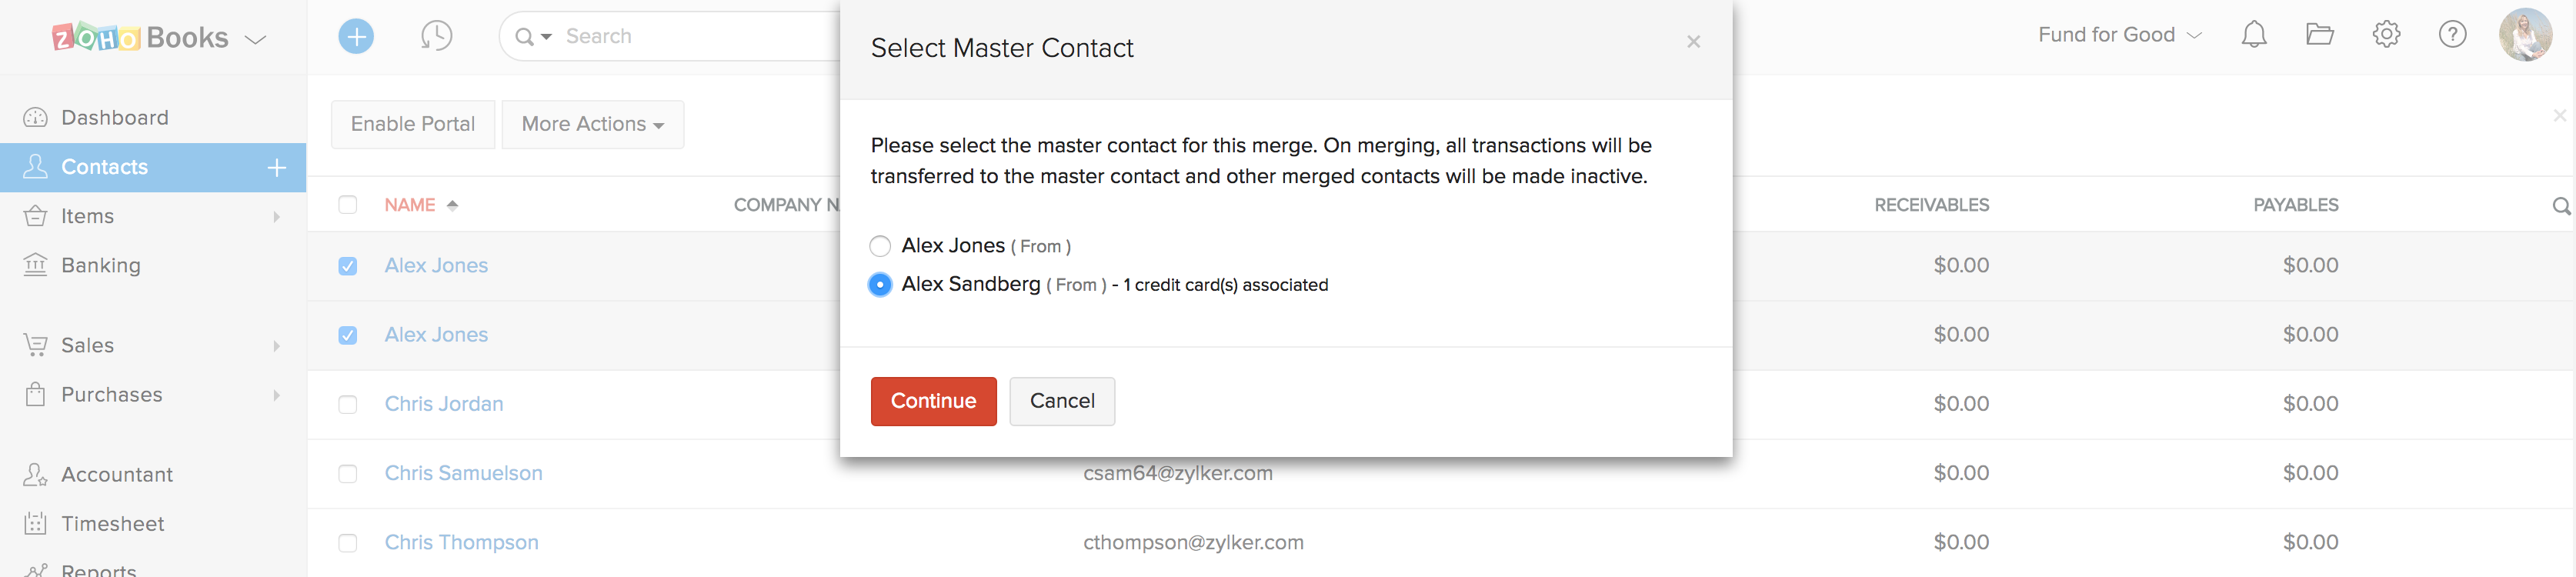 Merge Books contacts